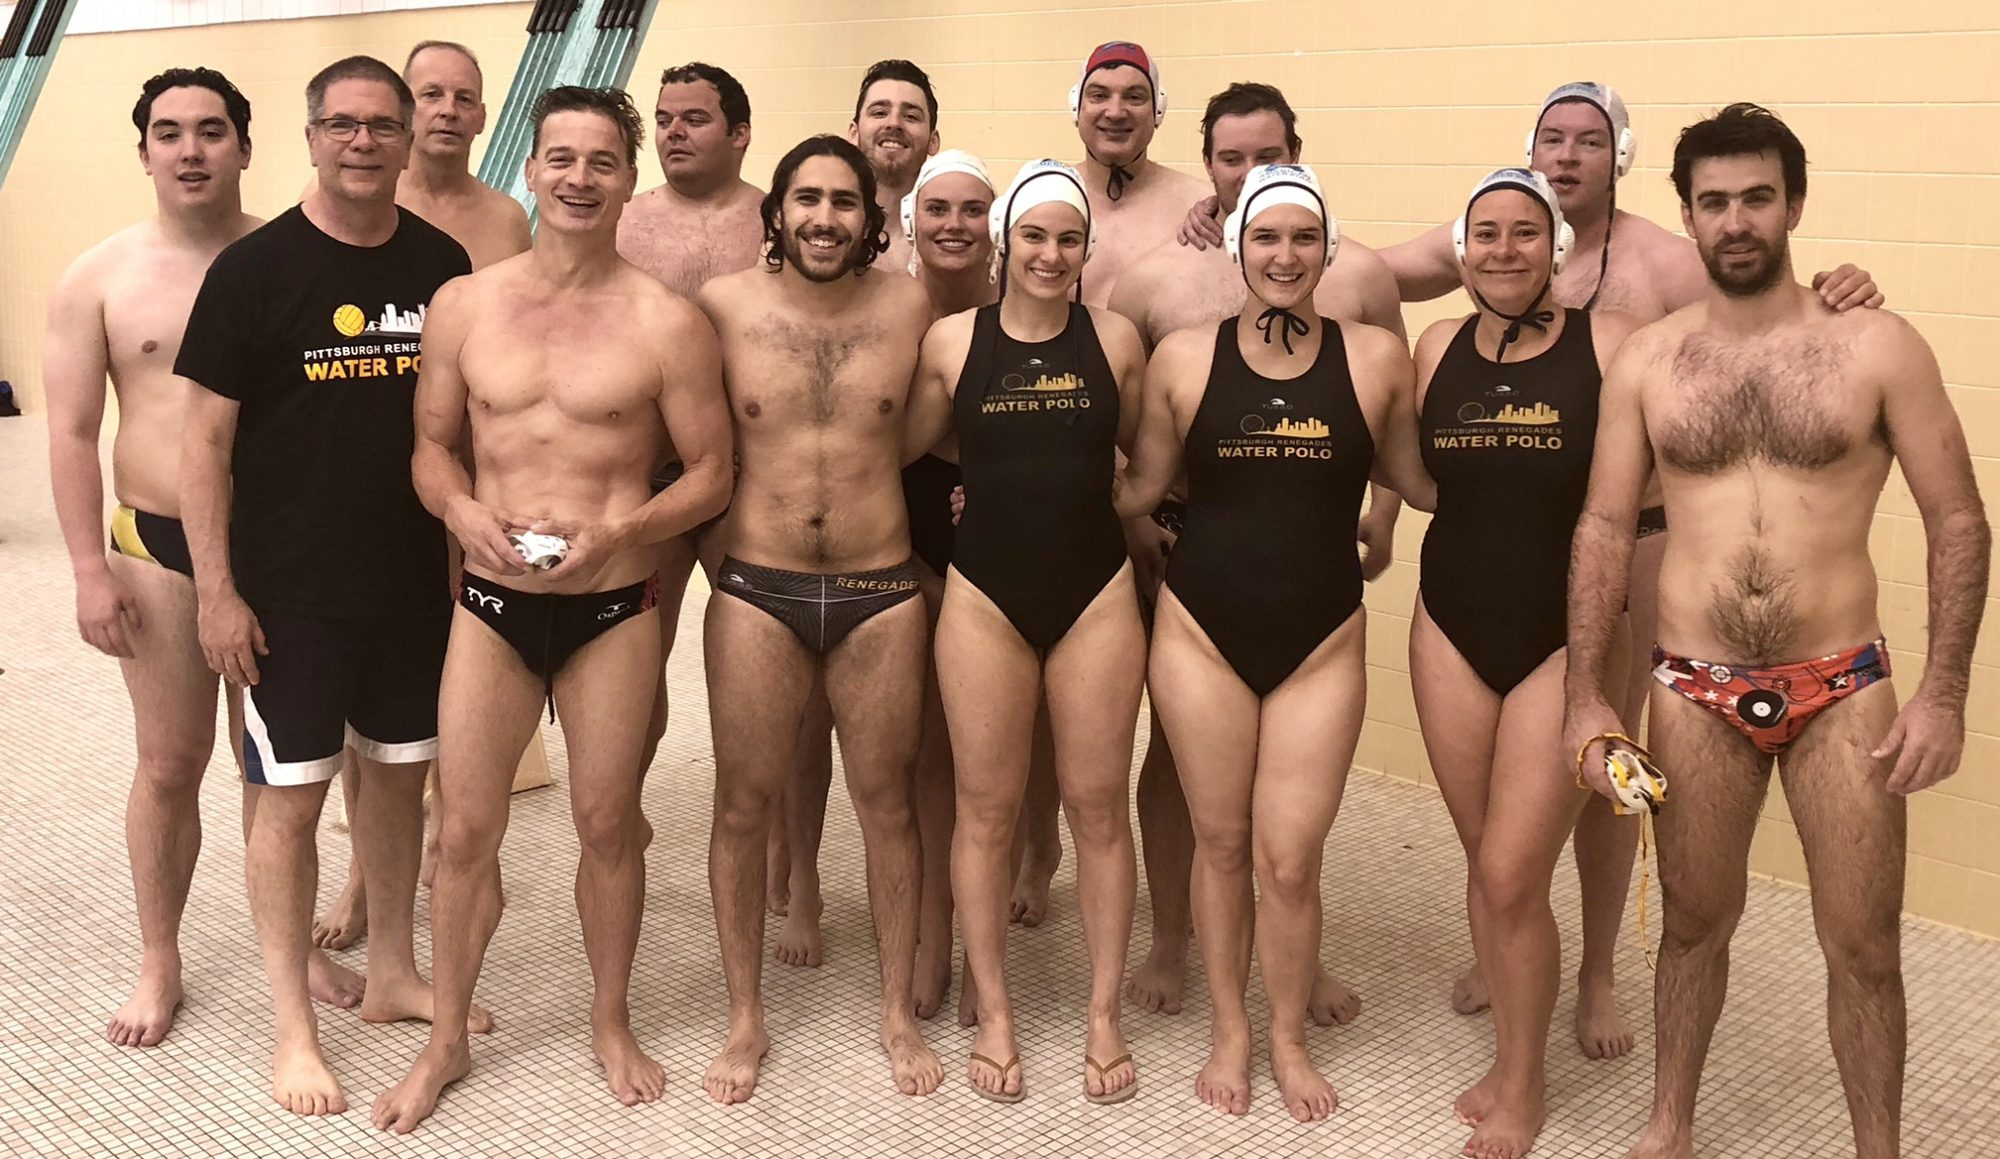 Renegades Water Polo